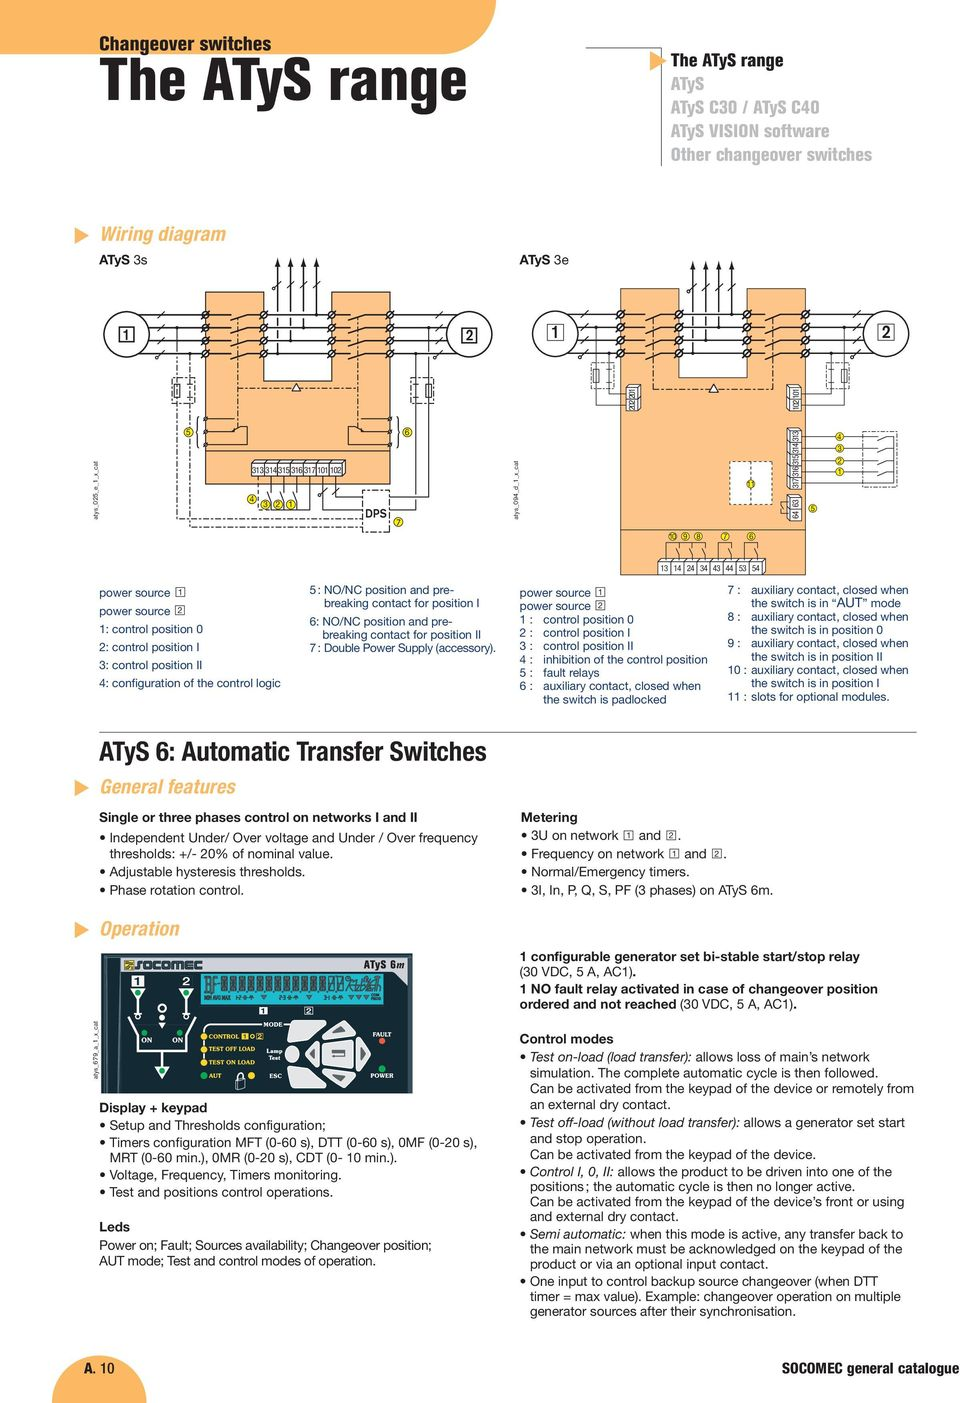 Automatic Transfer Switch From 63 To 3200 A Pdf On 3 Phase Wiring Position I 6 No Nc And Prebreaking Contact For Ii 7 11 Changeover Switches The Range Simplified